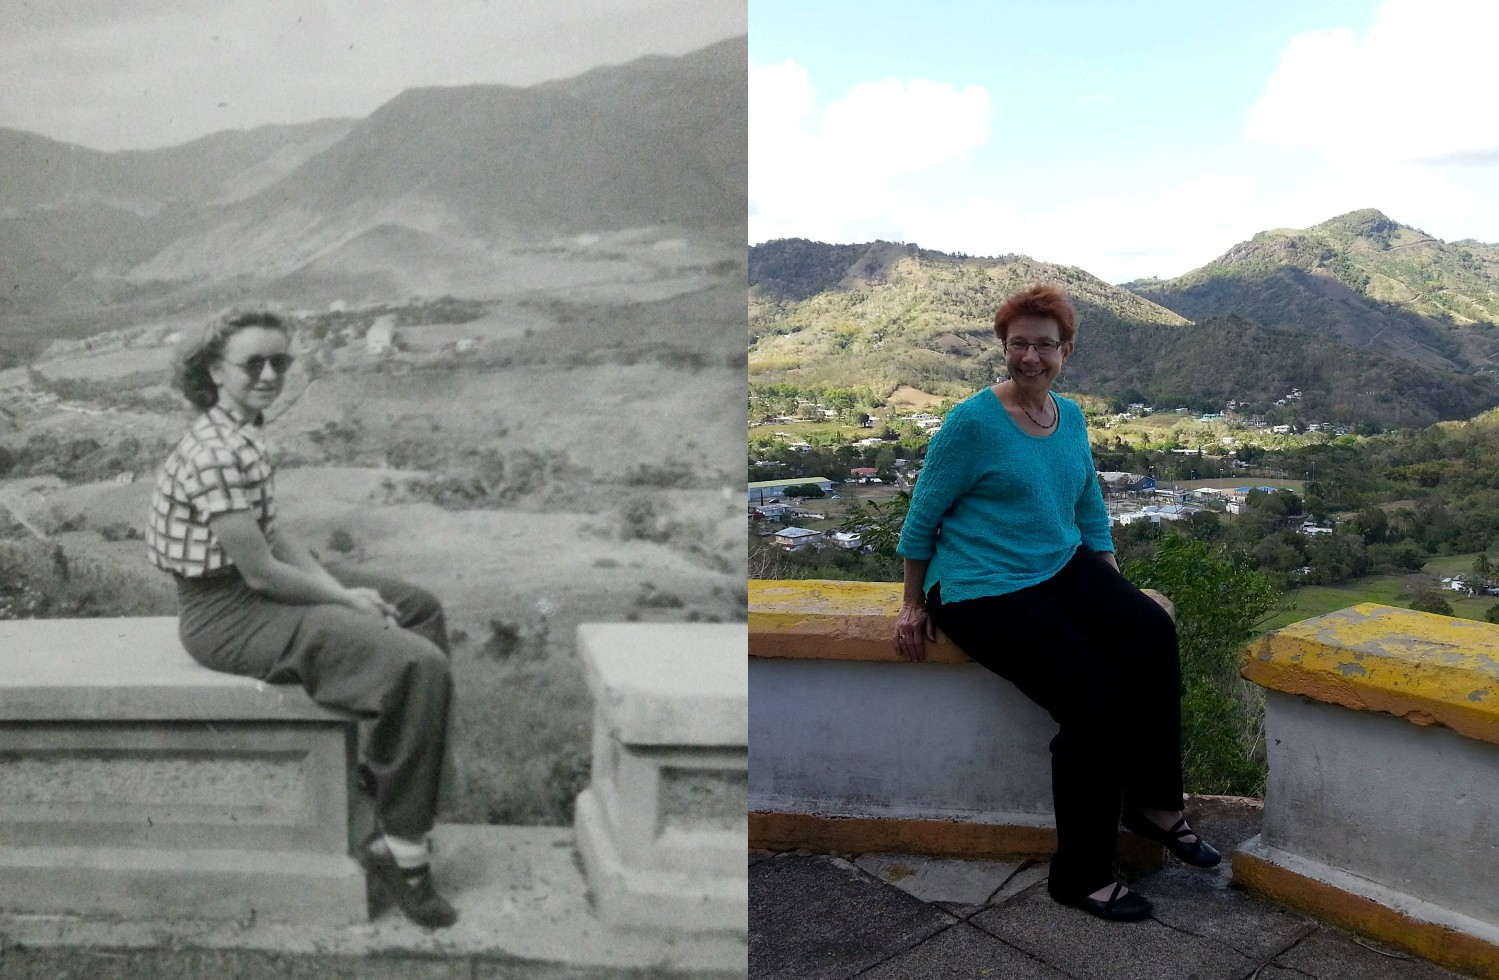 Ruth and Jan sitting in the same spot above La Plata Puerto Rico Aibonito area